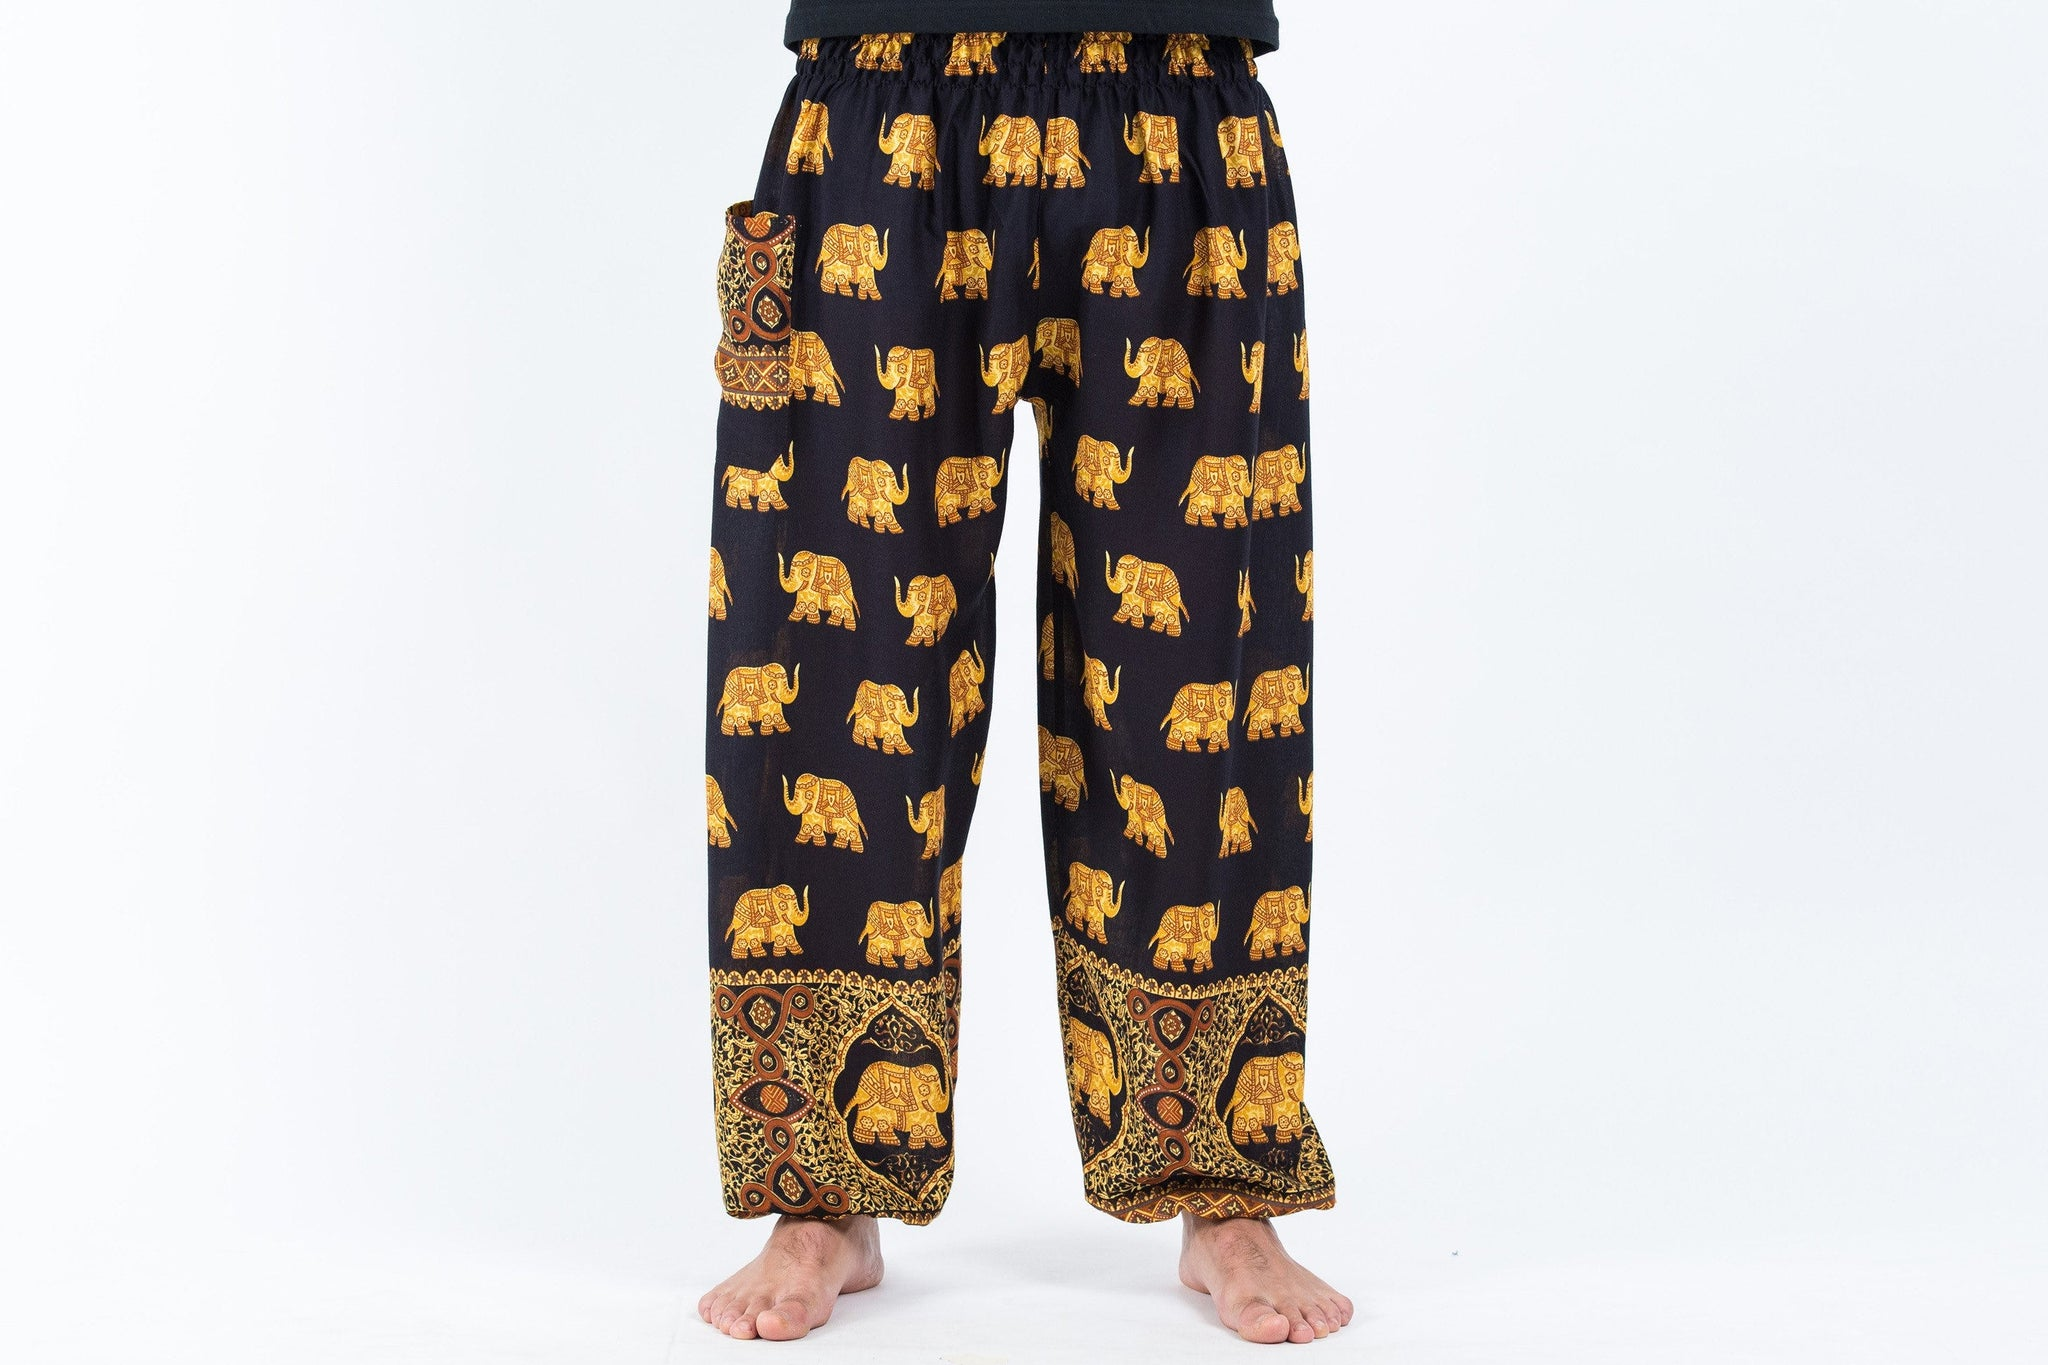 harem pants men-elephant black and gold - elephant pantz